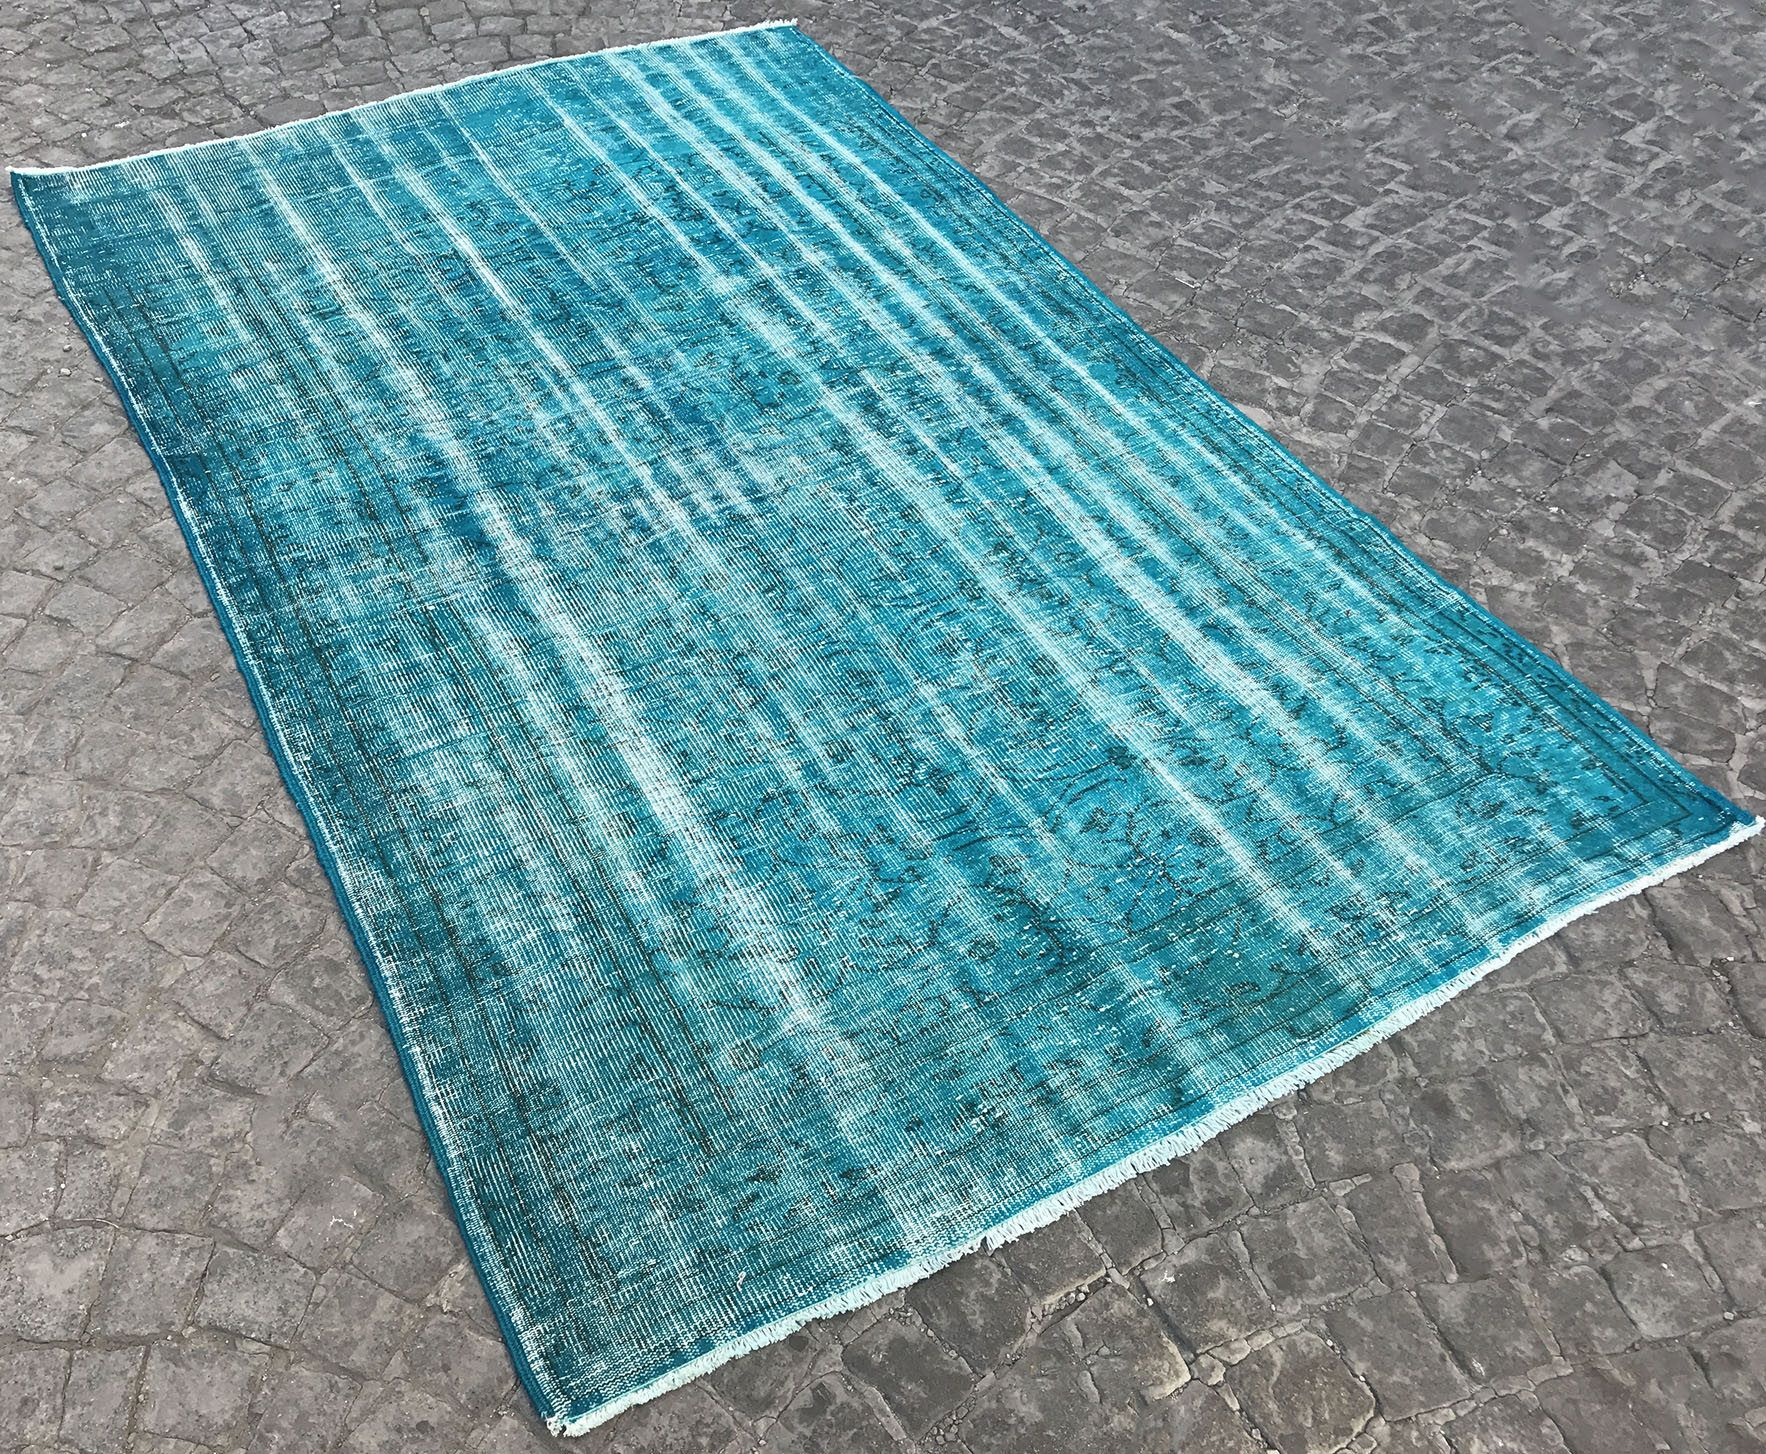 Blue Oushak Rug Vintage Overdyed Carpet Traditional Distressed Wool And Cotton Ethnic